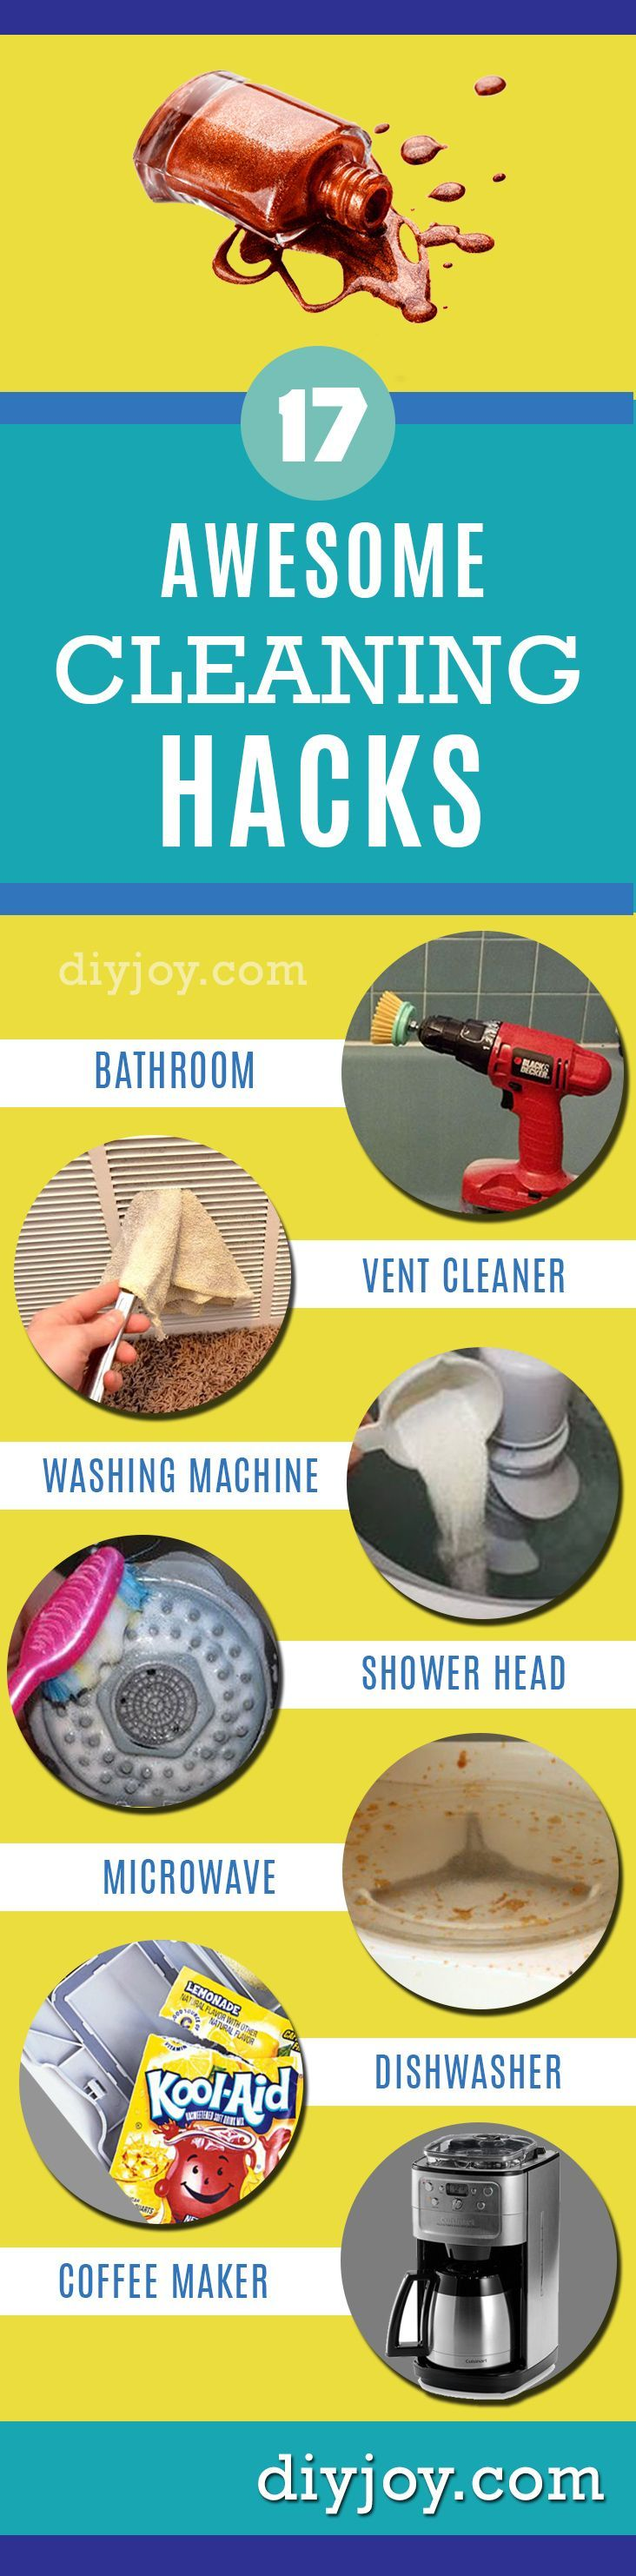 best cleanliness images on pinterest cleaning hacks cleaning